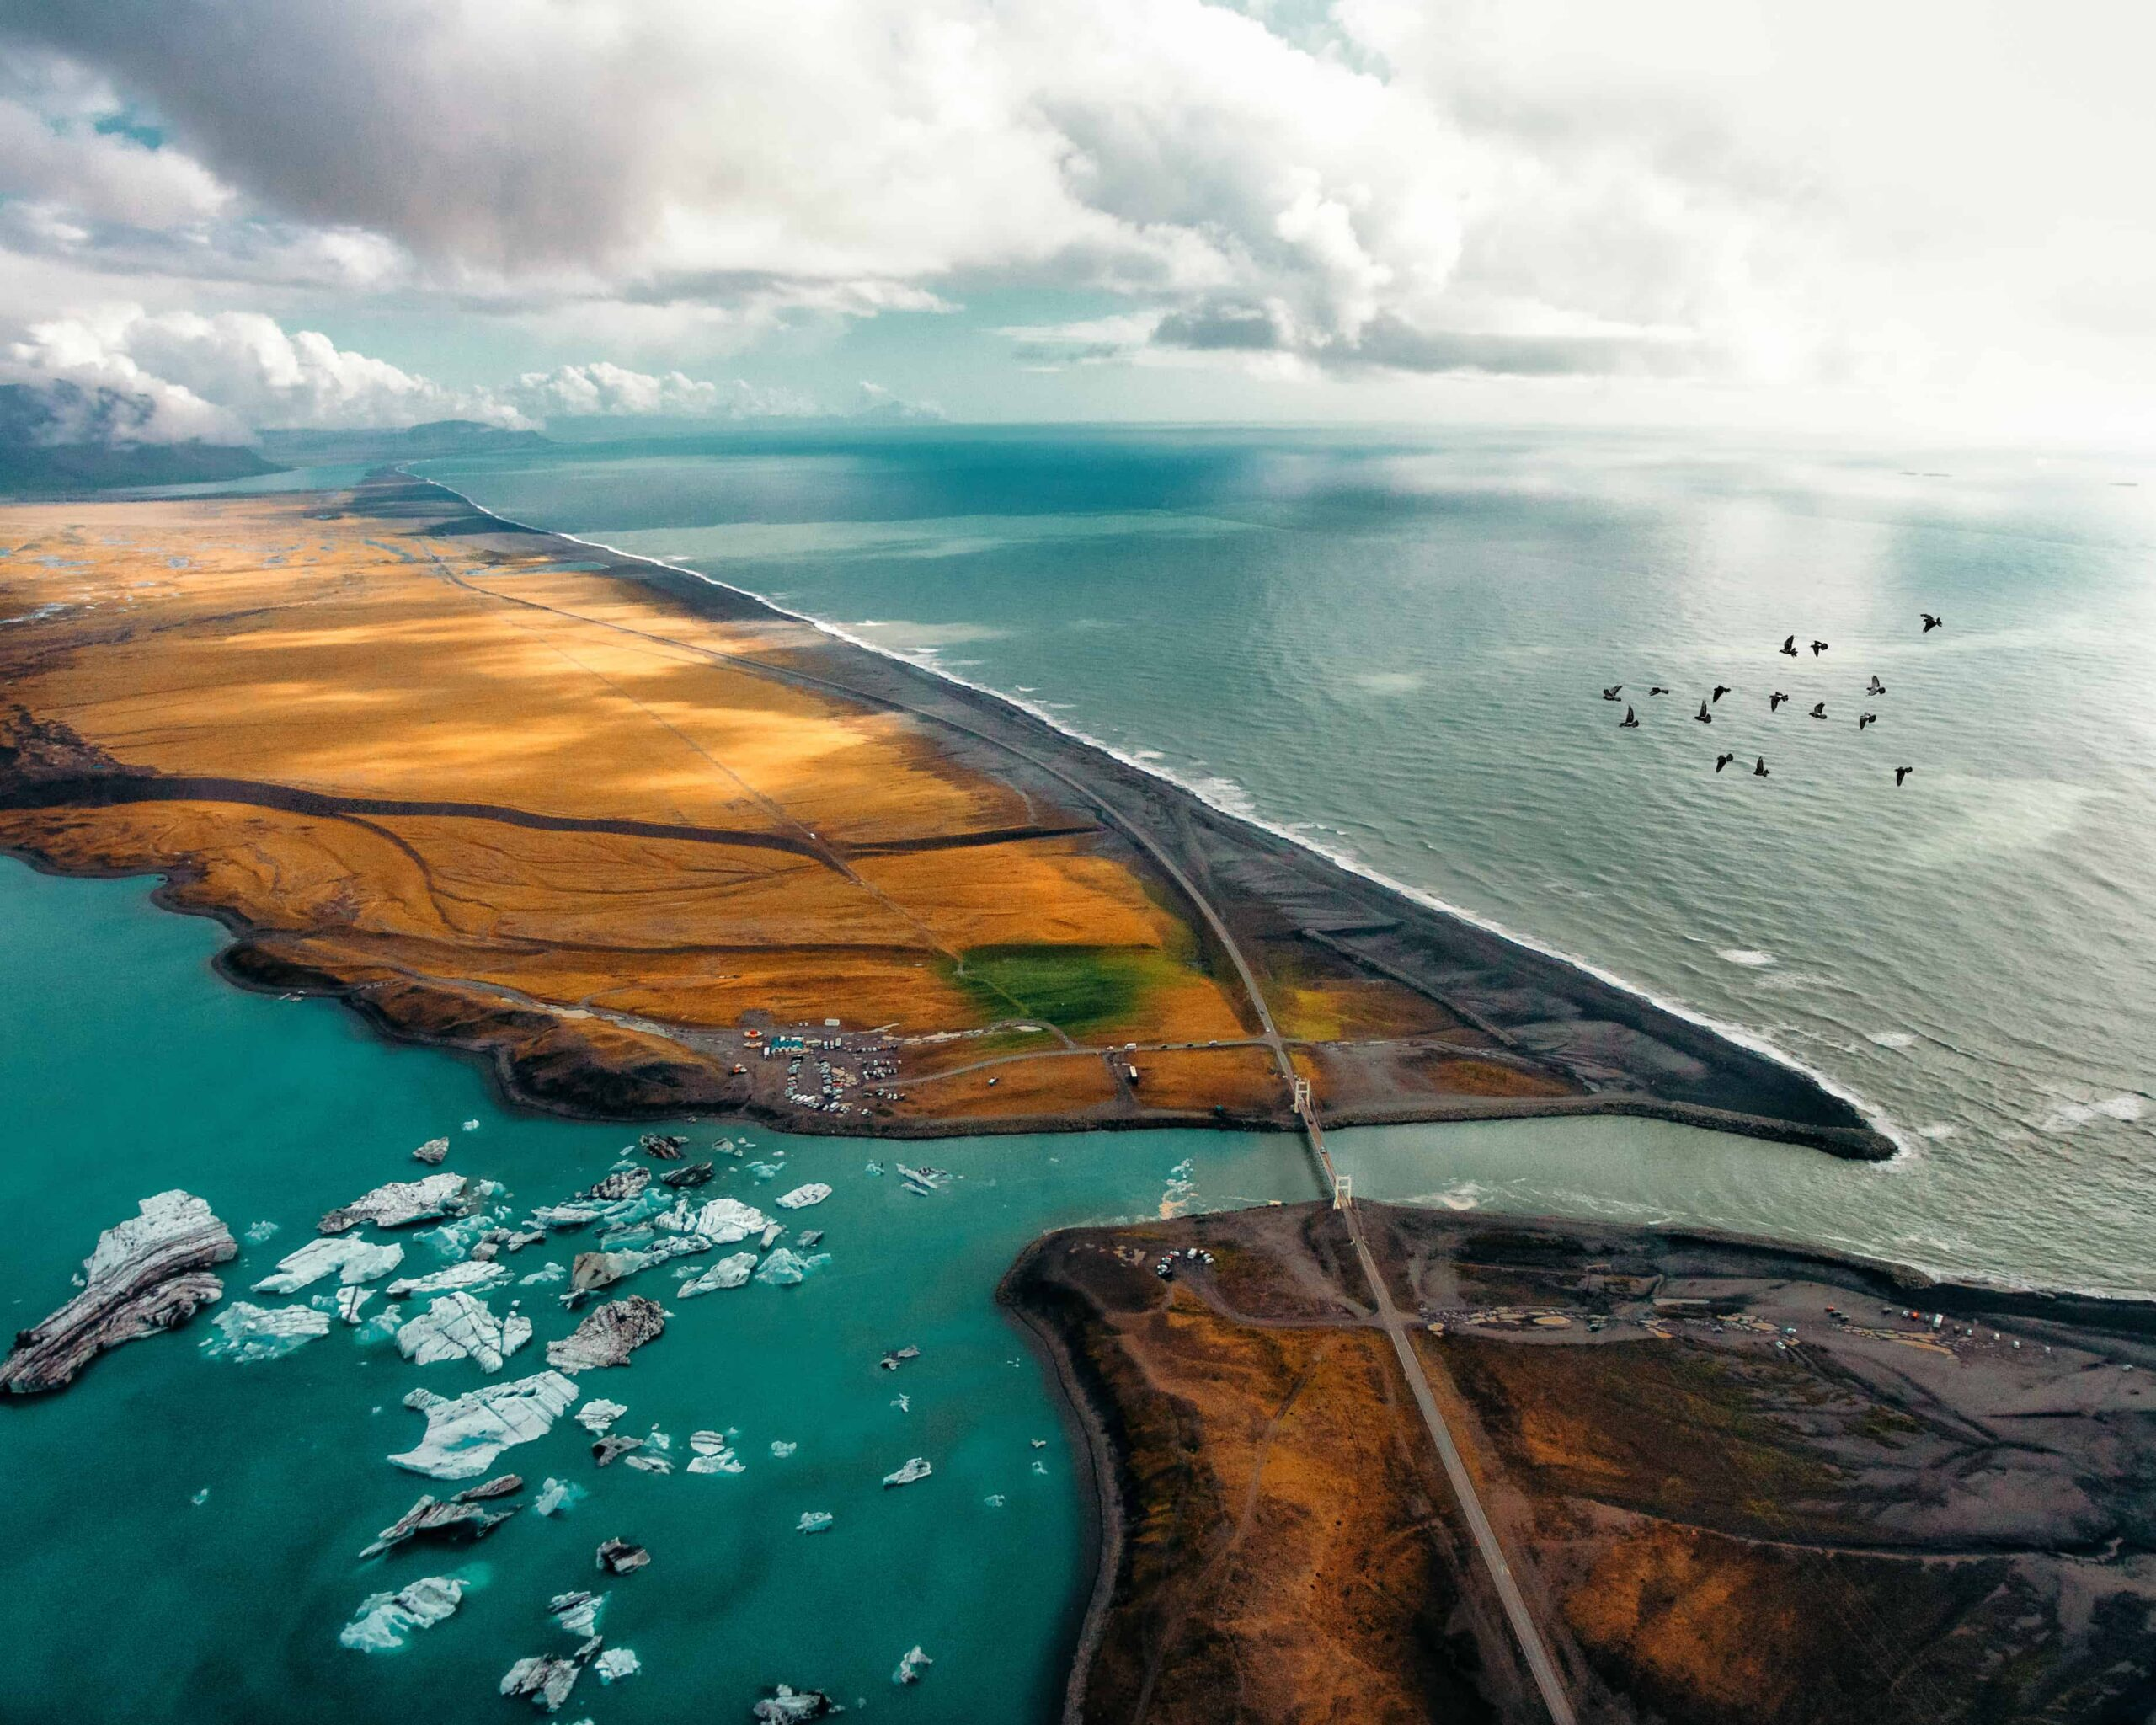 Helicopter view at Jokulsarlon glacier lagoon in Iceland